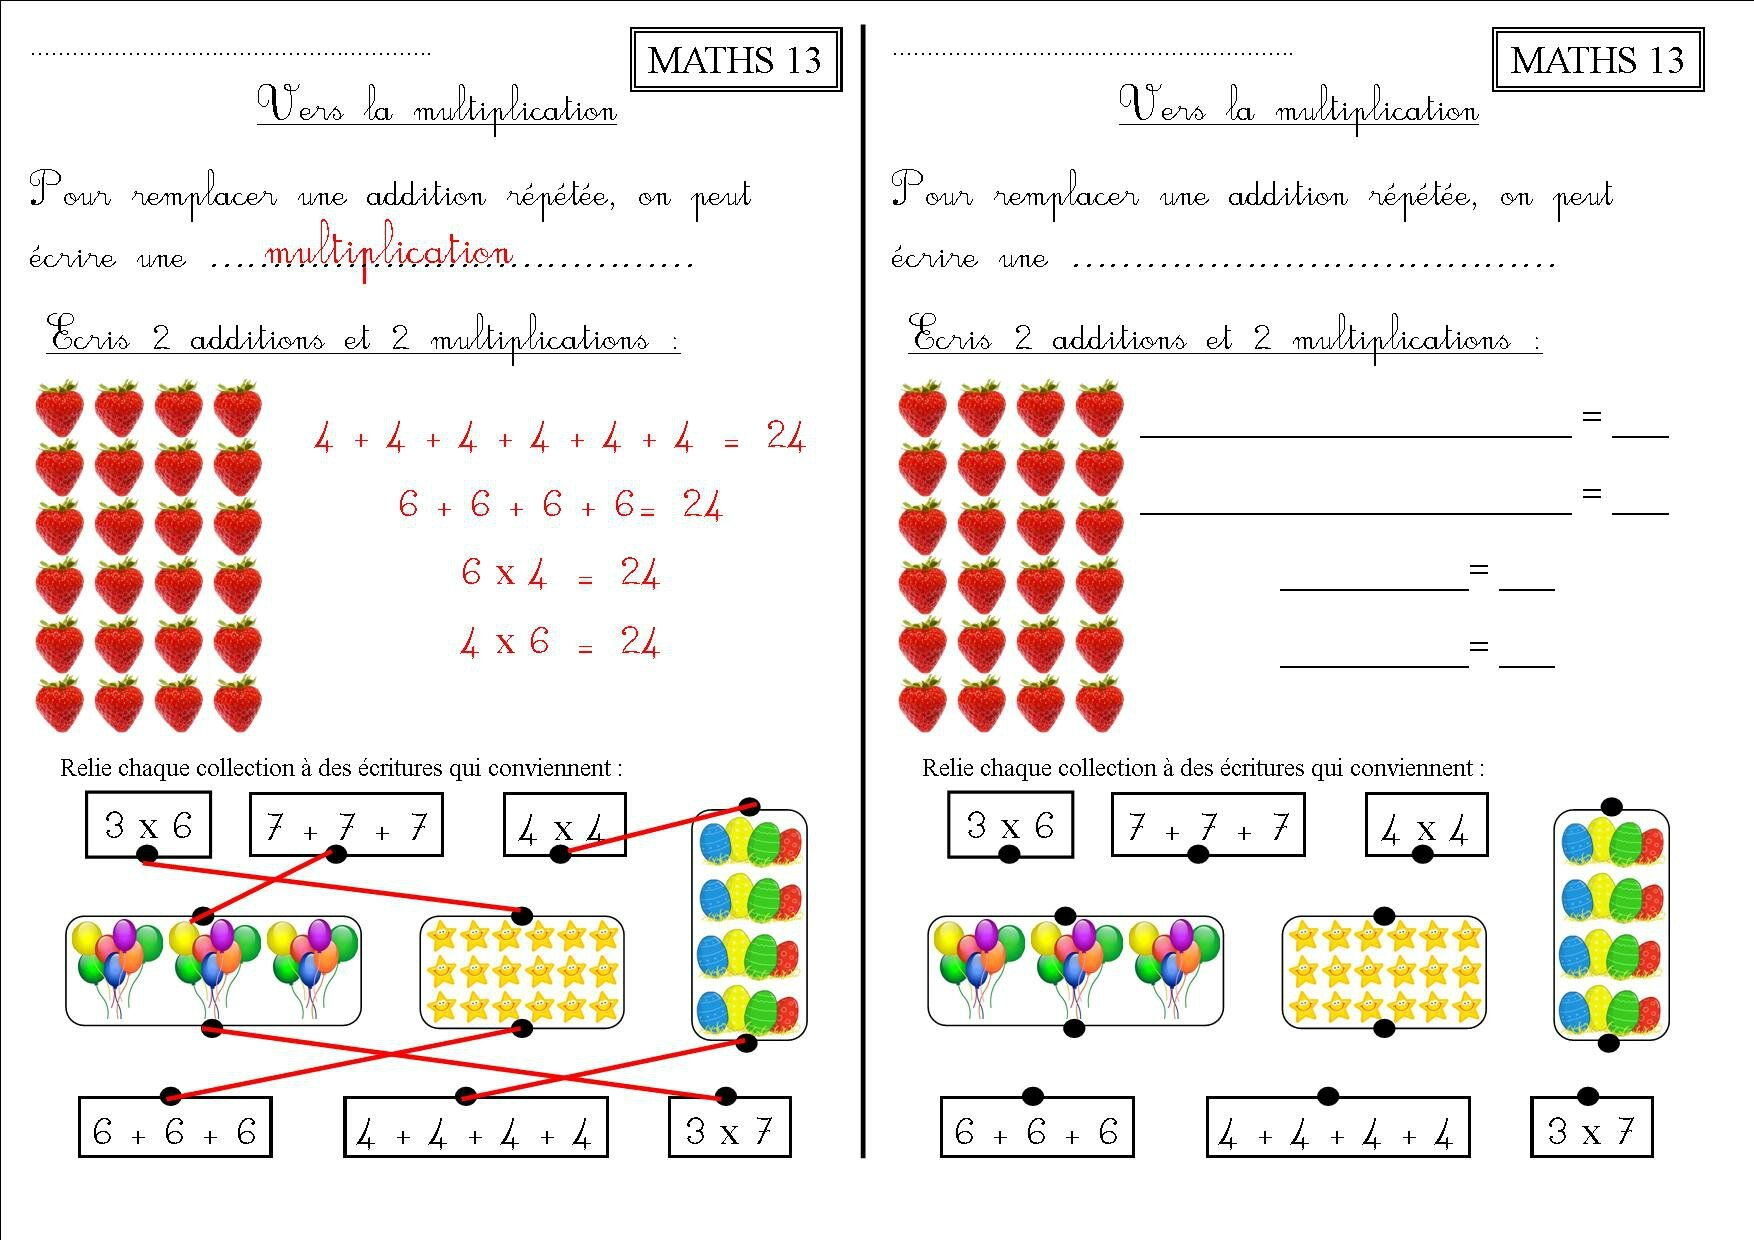 Maths 13 ce1 vers la multiplication la classe des ce for La table de multiplication